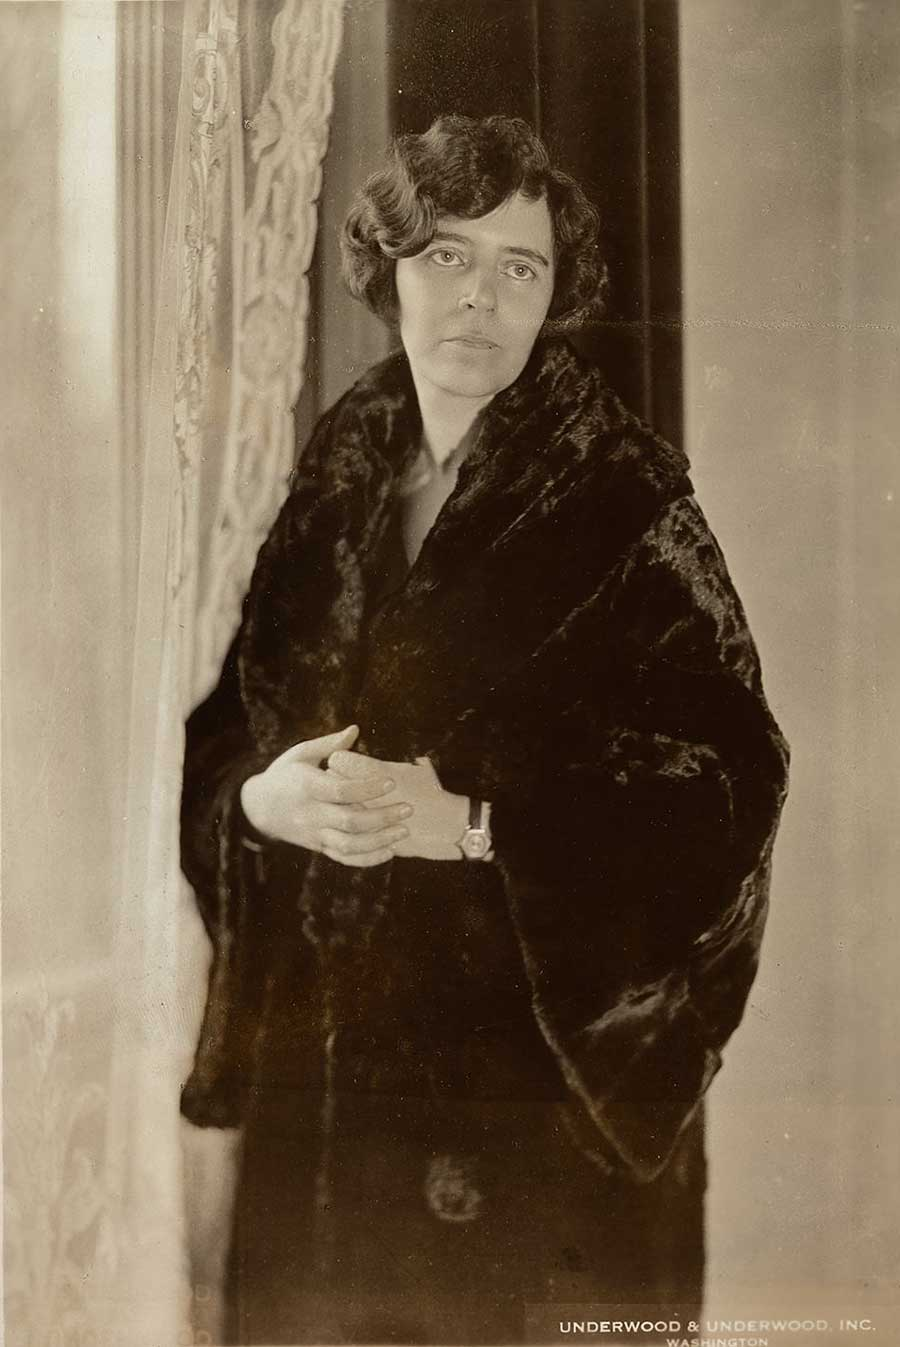 Sepia-toned photograph of Alice Paul standing in fur coat